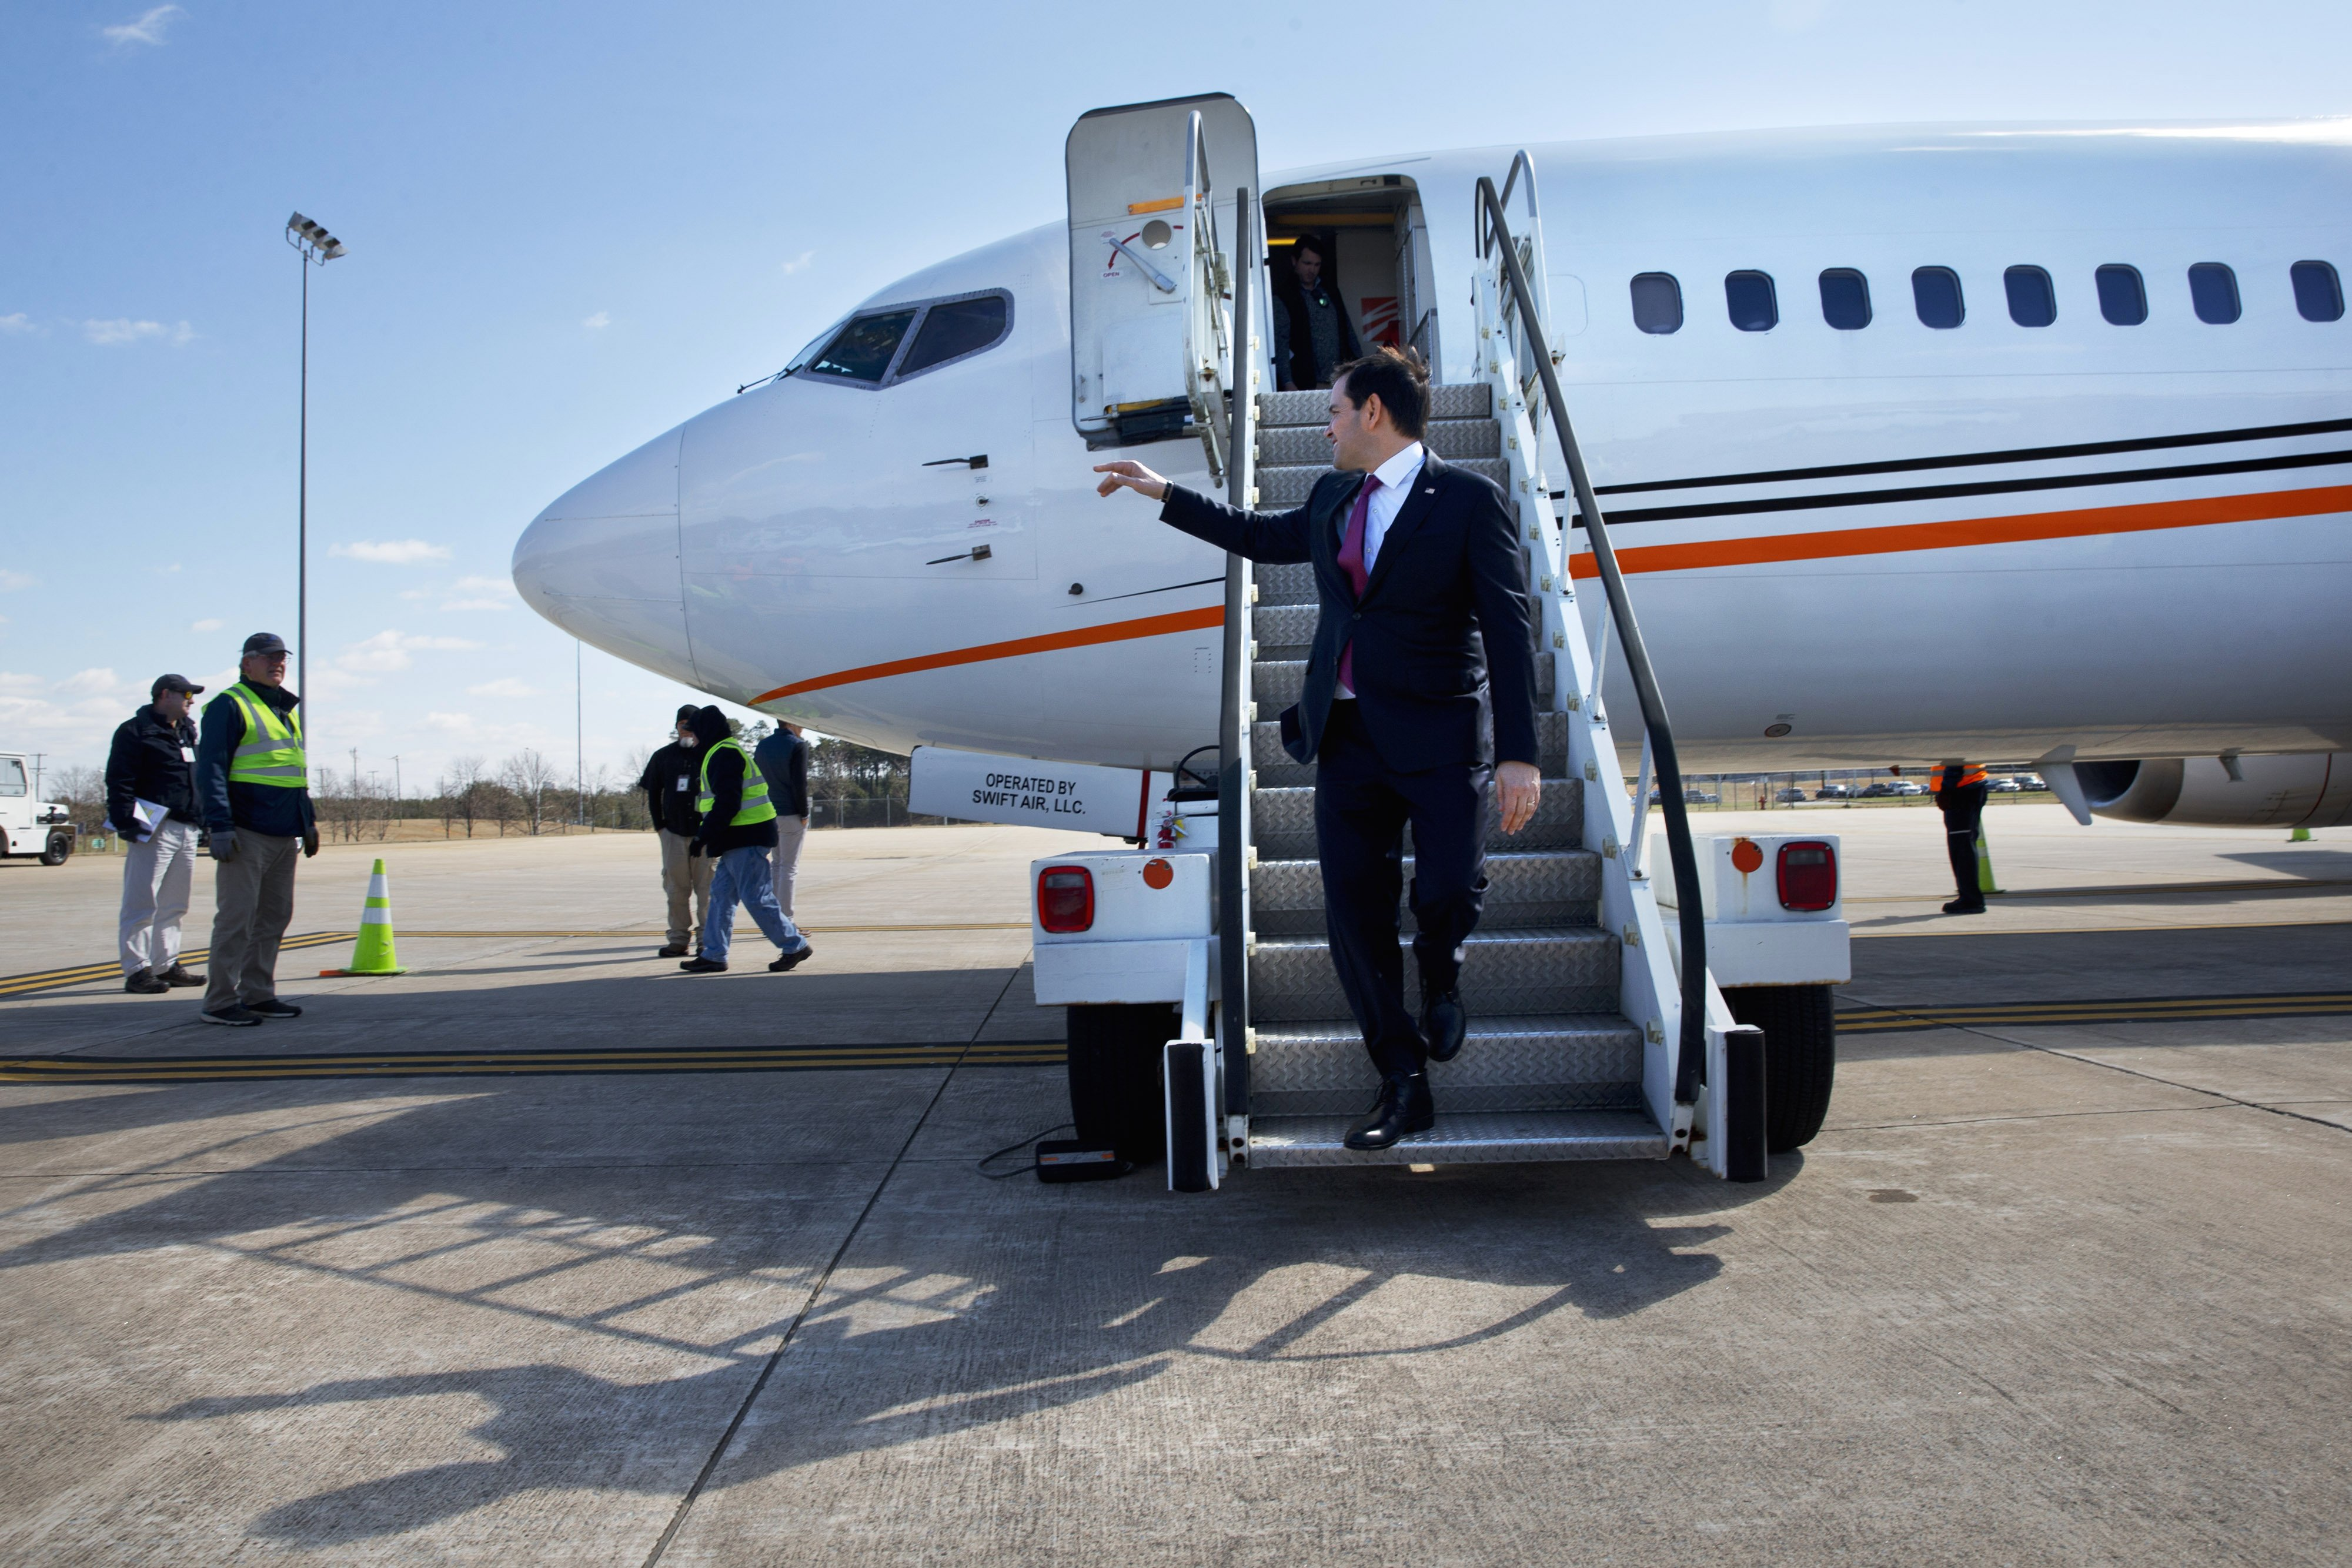 Marco Rubio arrives in Greer, en route to a campaign event in Spartanburg, SC on Feb. 10, 2016.